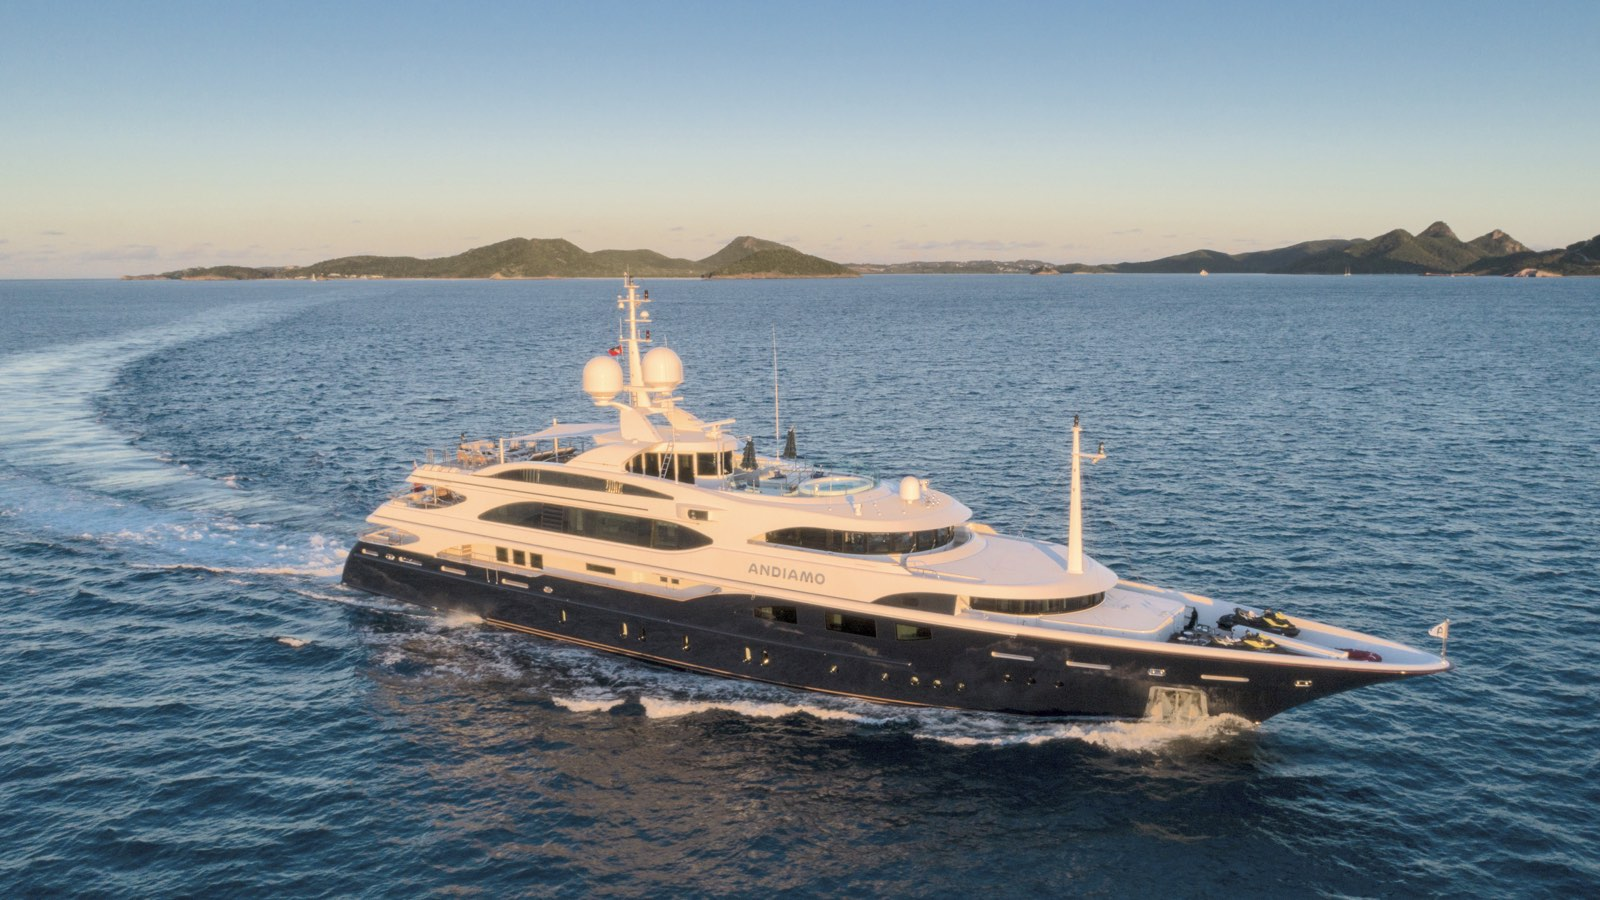 Over 100 Luxury Yachts for Charter / Mega Yachts for Charter by IYC